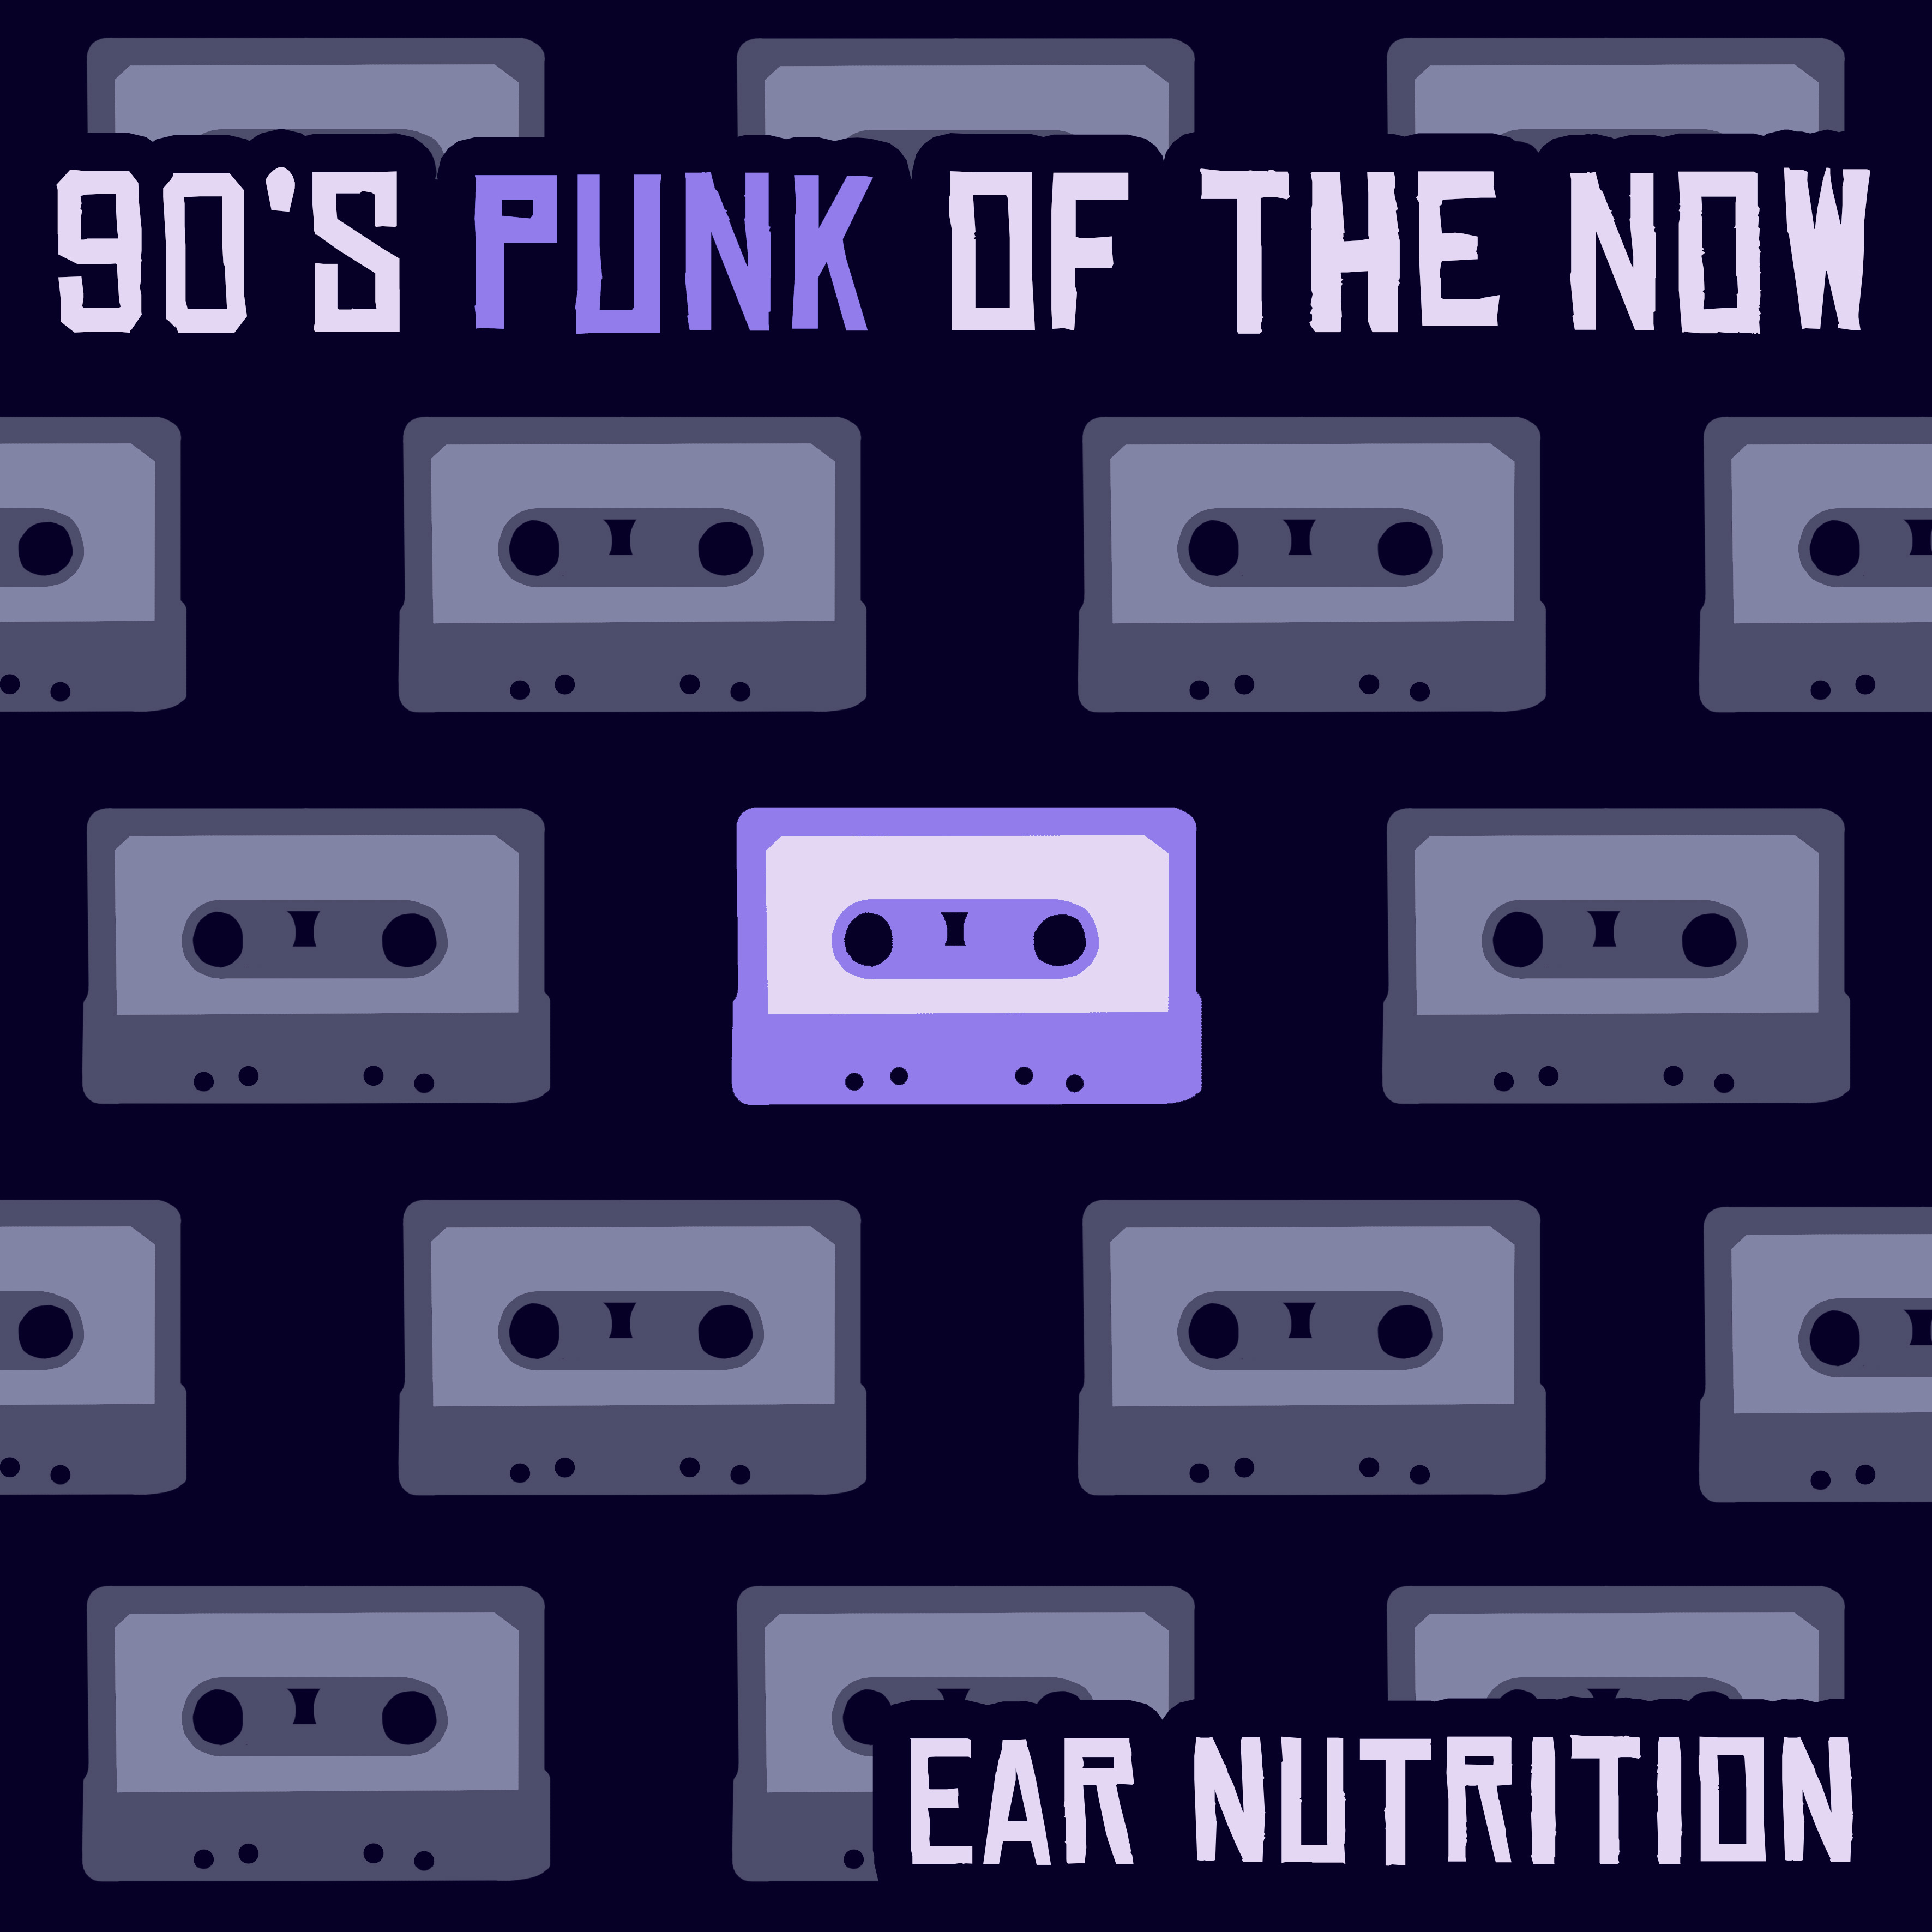 90's Punk of The Now